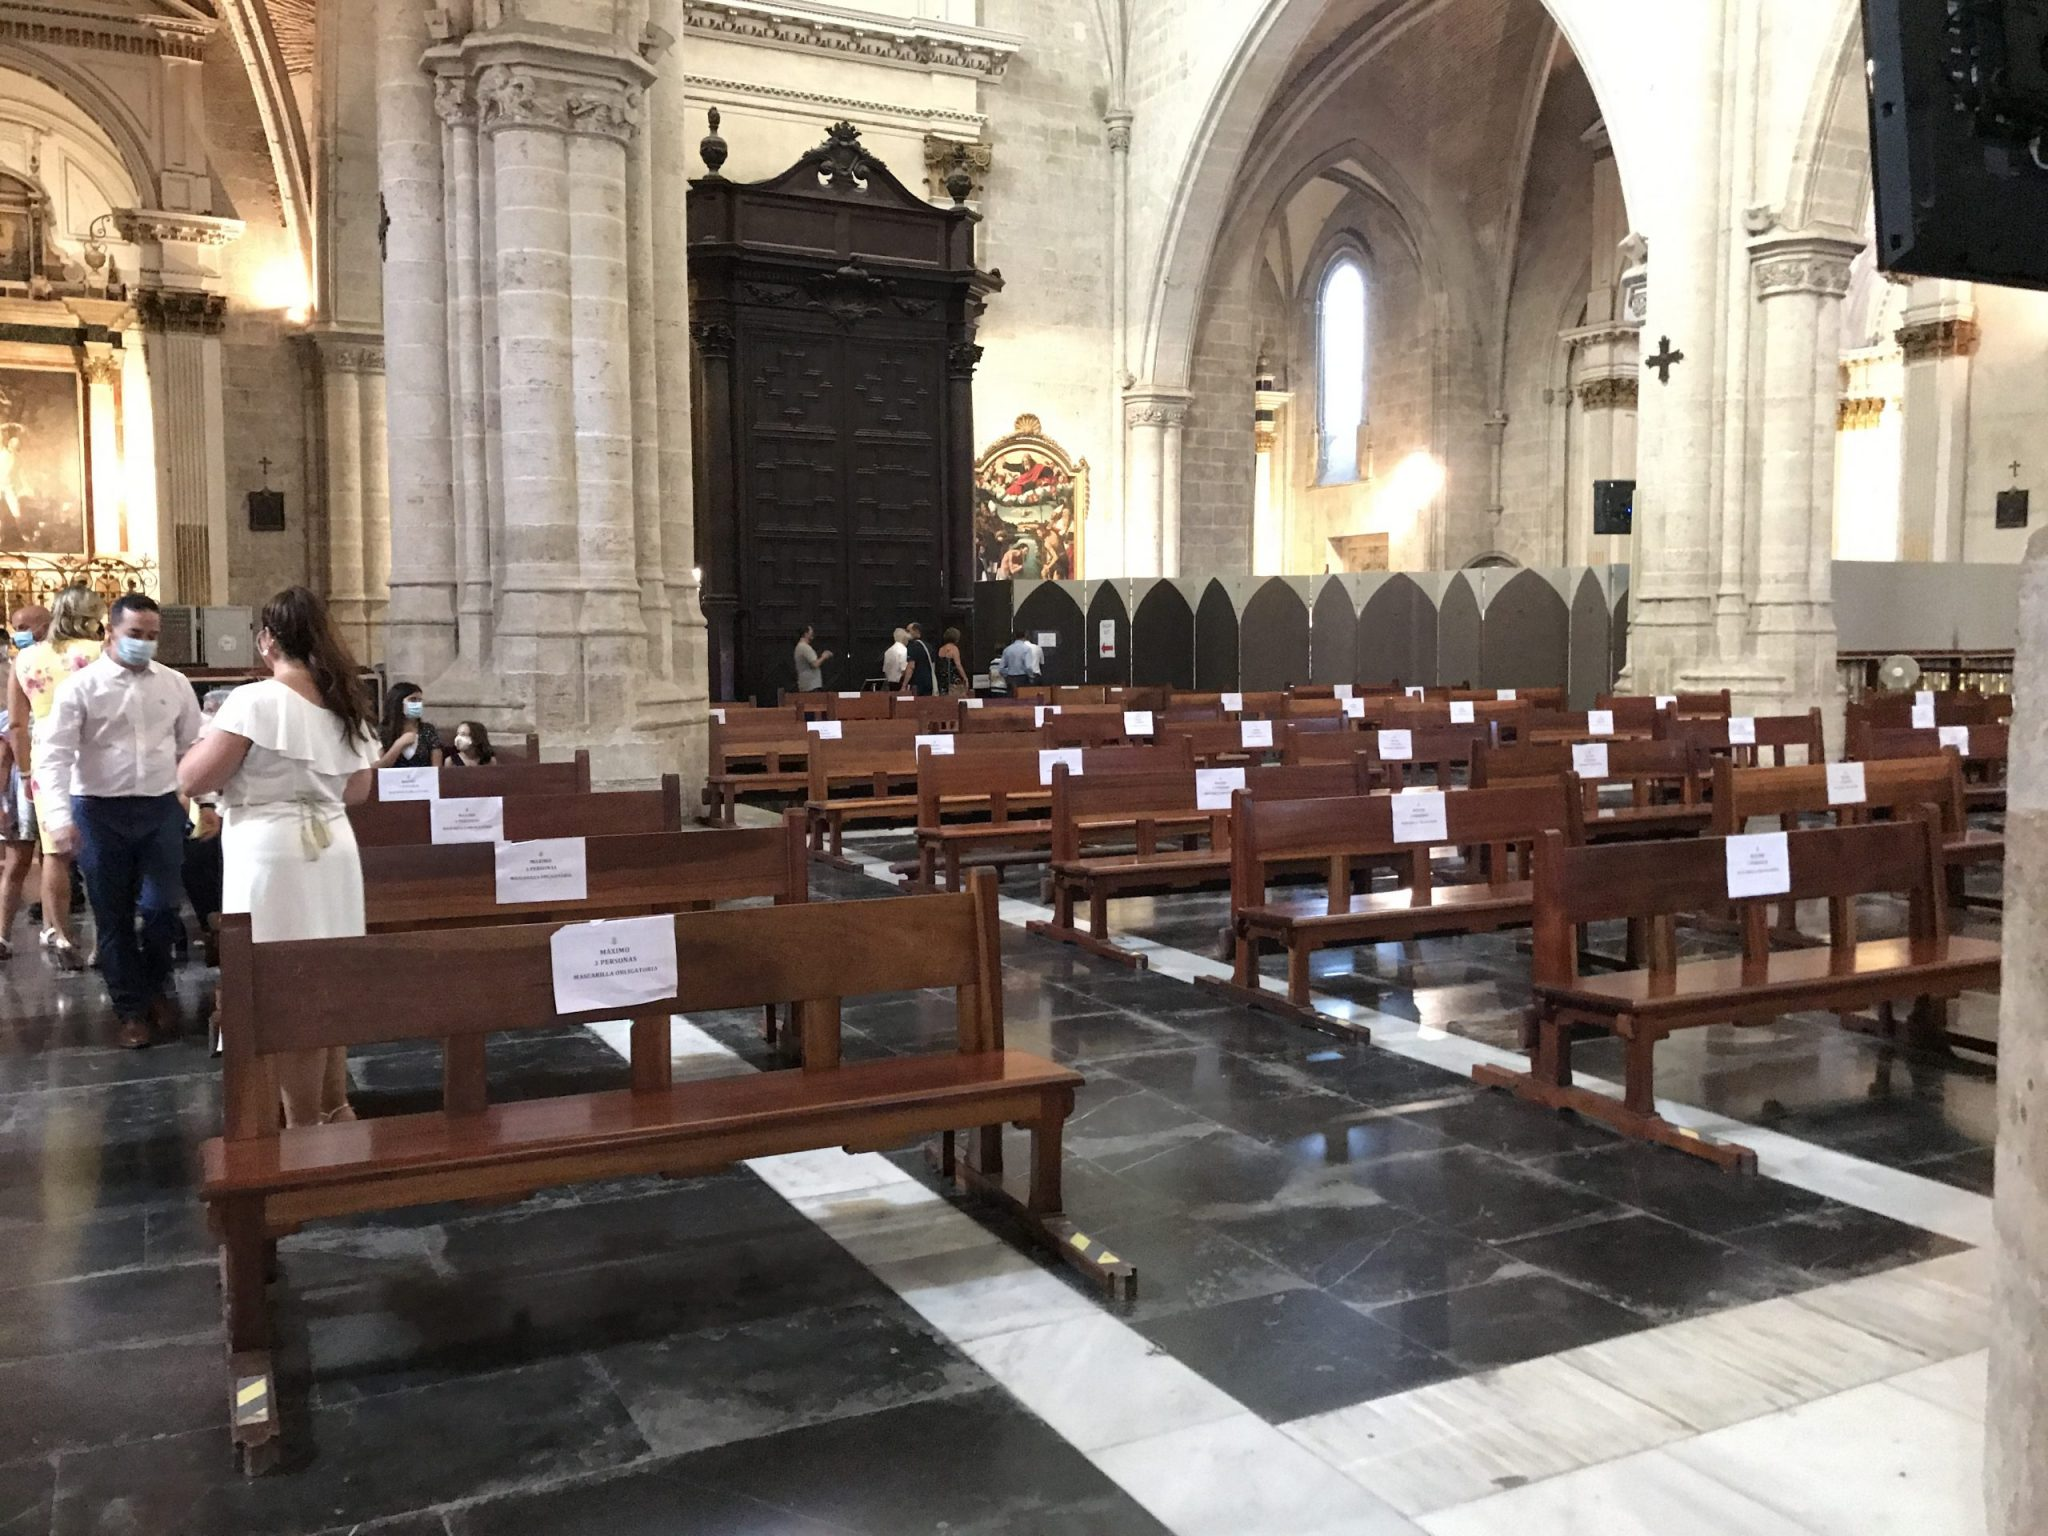 An image of church pews with social distancing signs as people start traveling again.